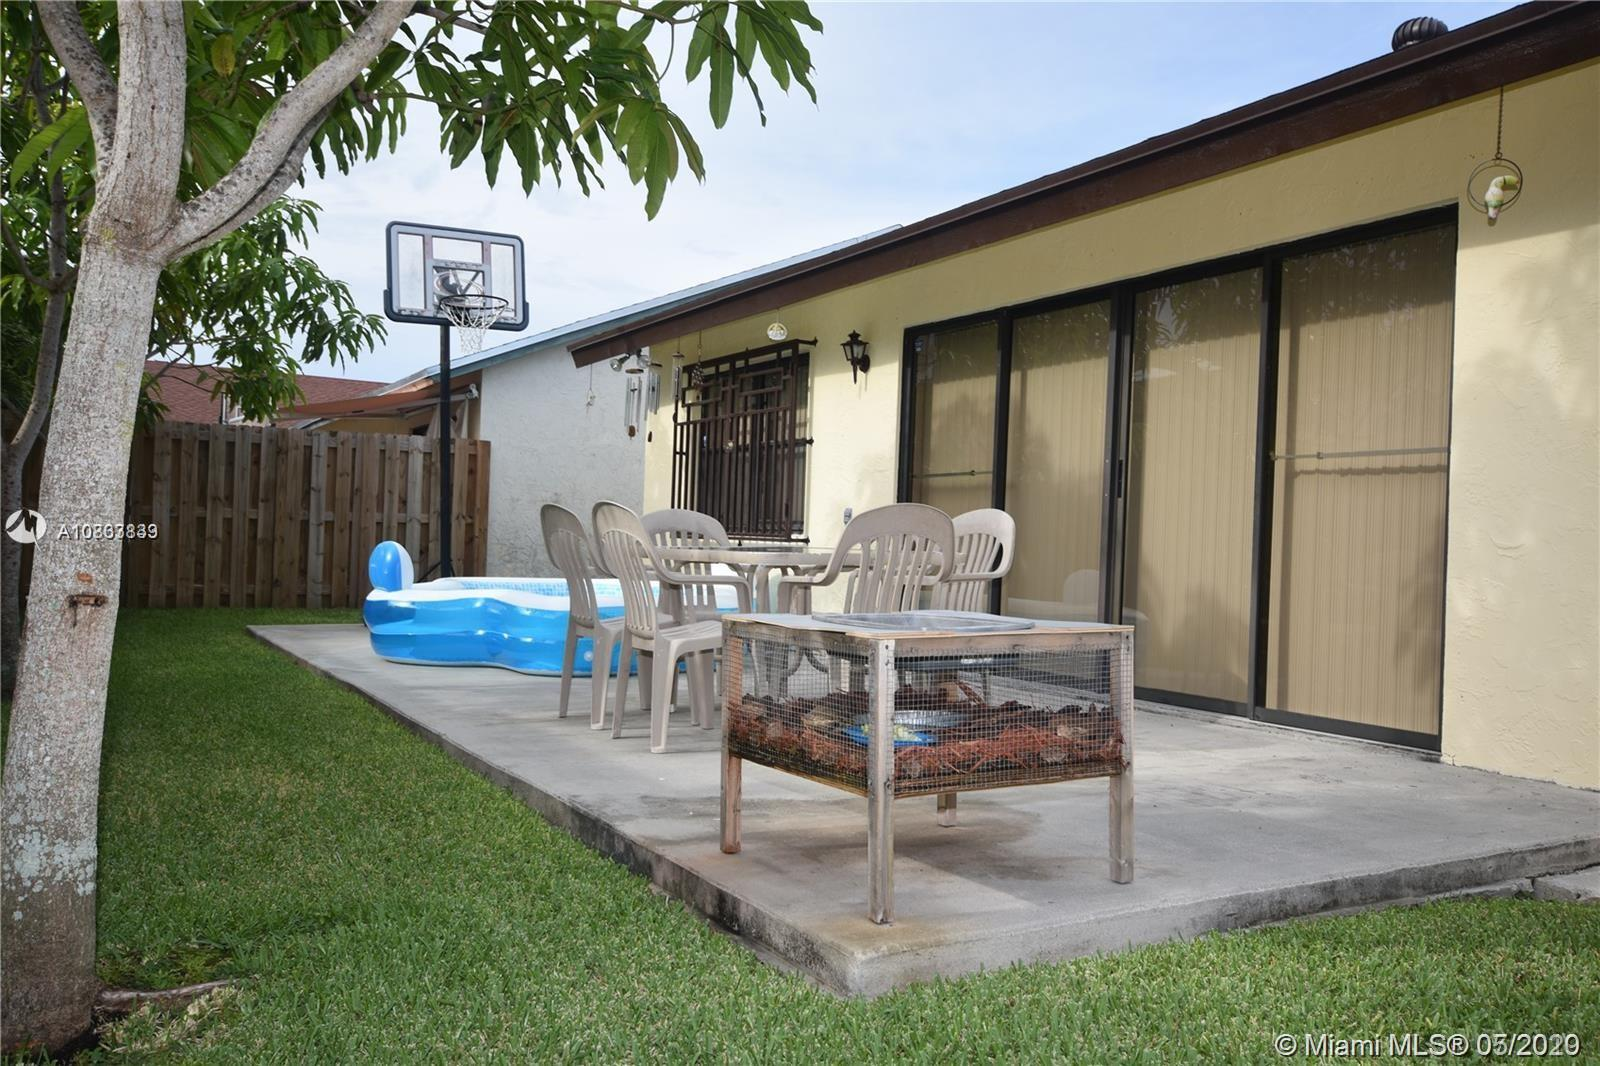 Listing A10833839 - Large Photo # 23